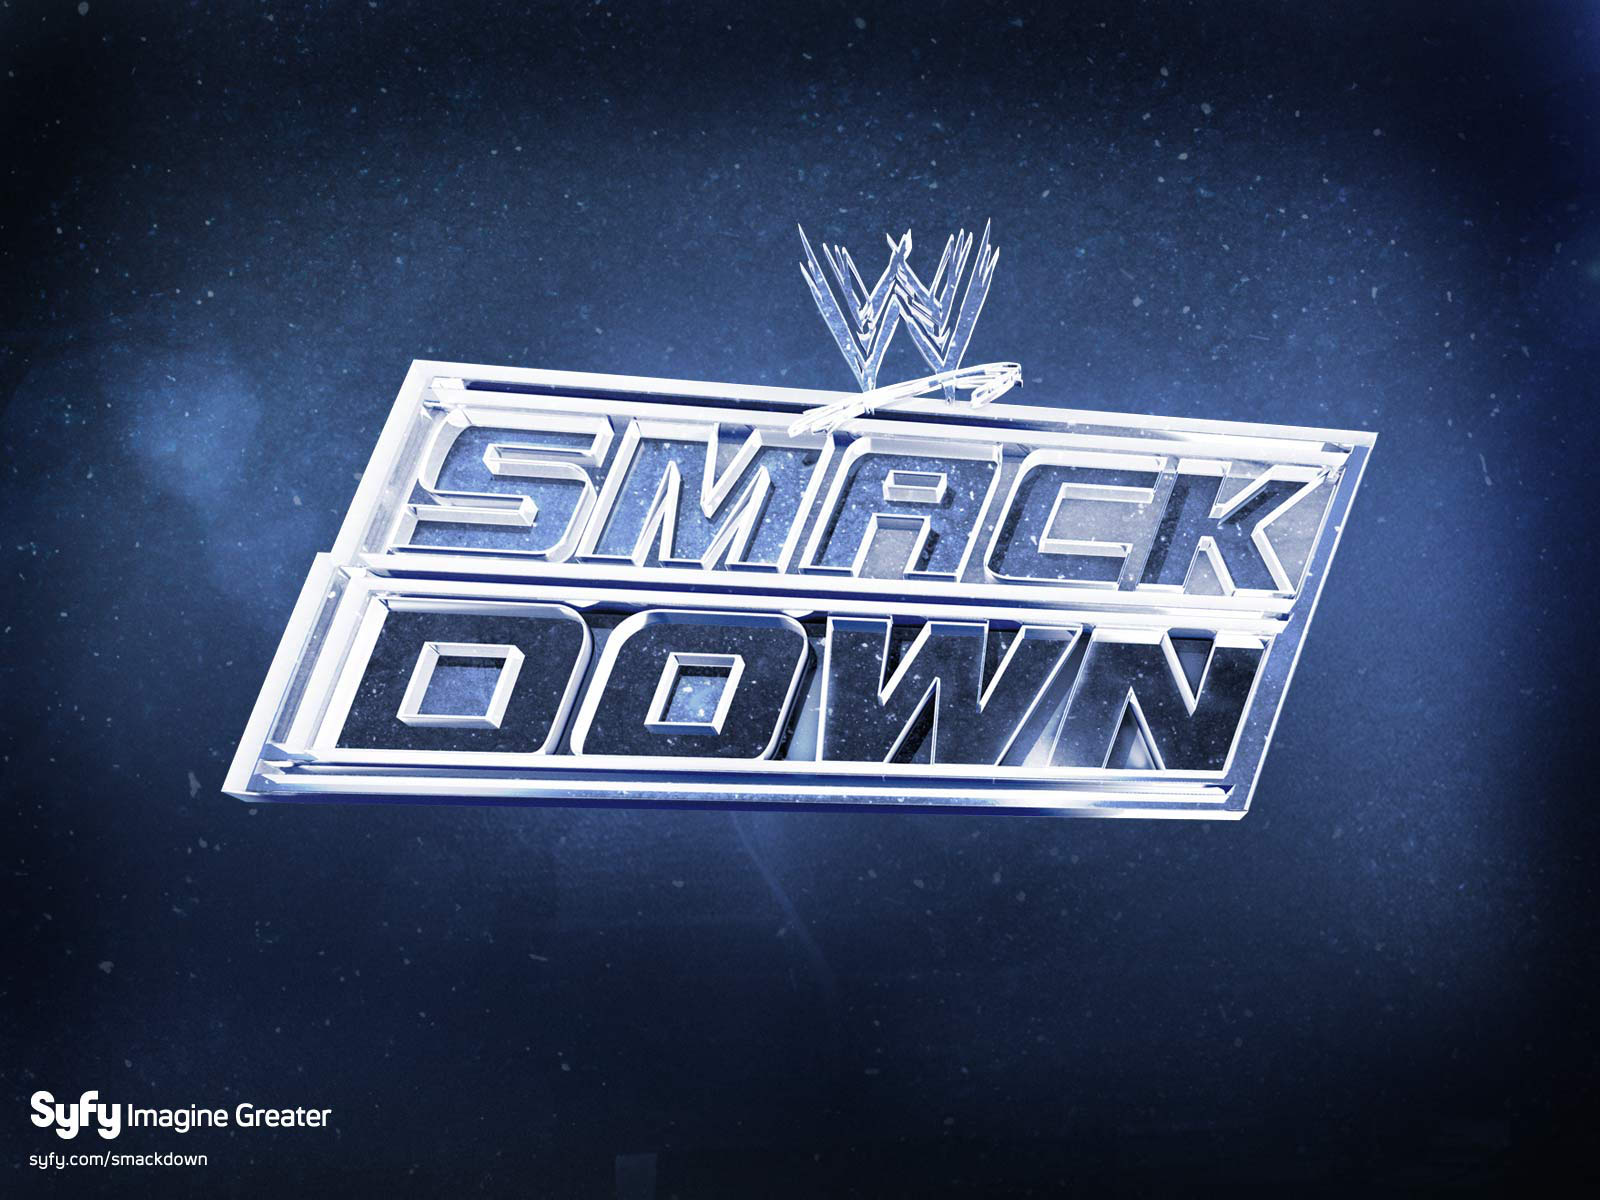 Wwe Smackdown Images WWE SmackDown HD Wallpaper And Background Photos